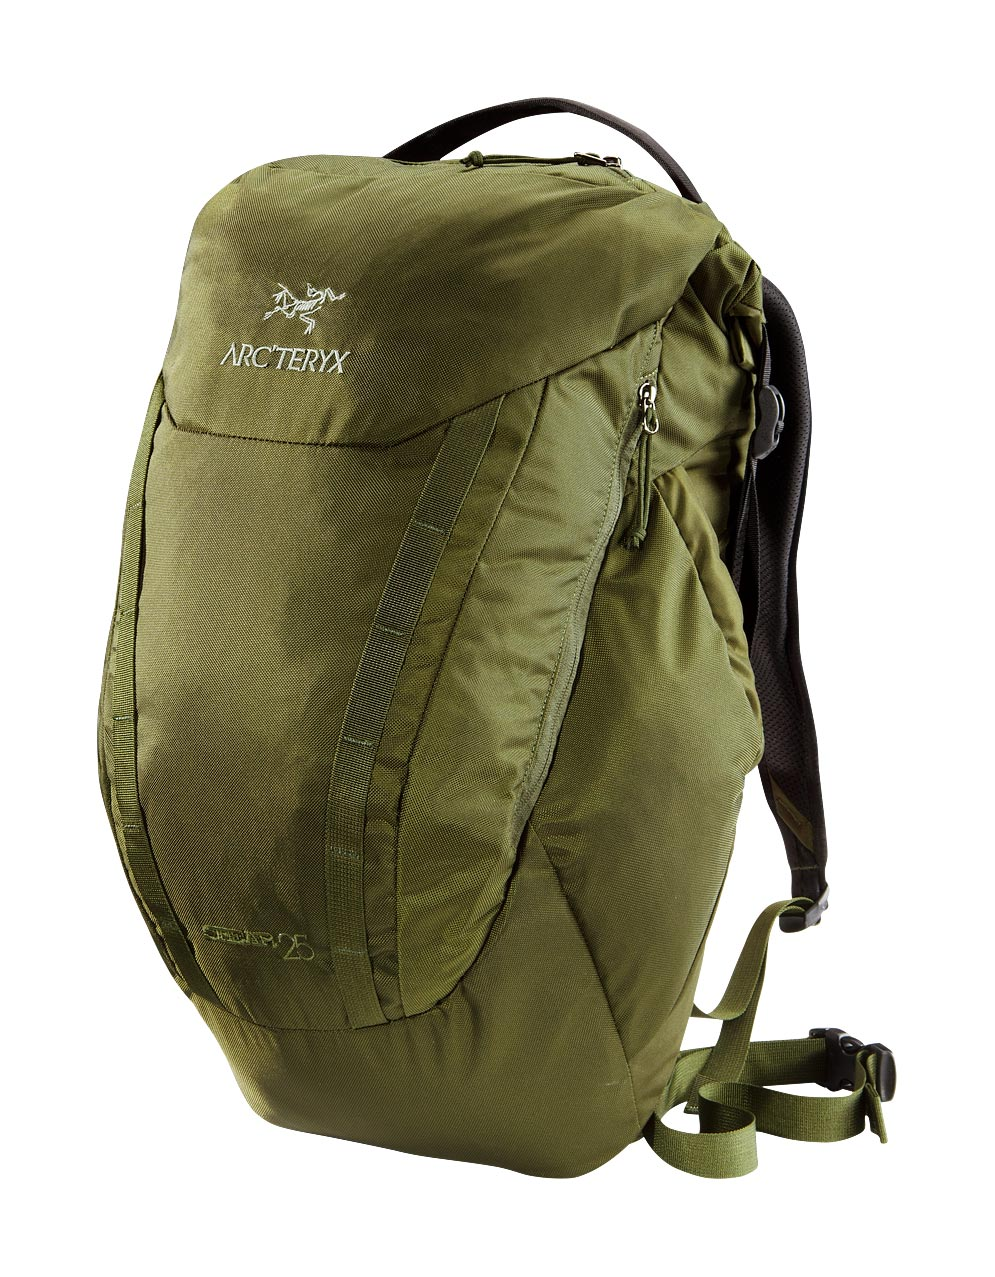 Arcteryx Peat Spear 27